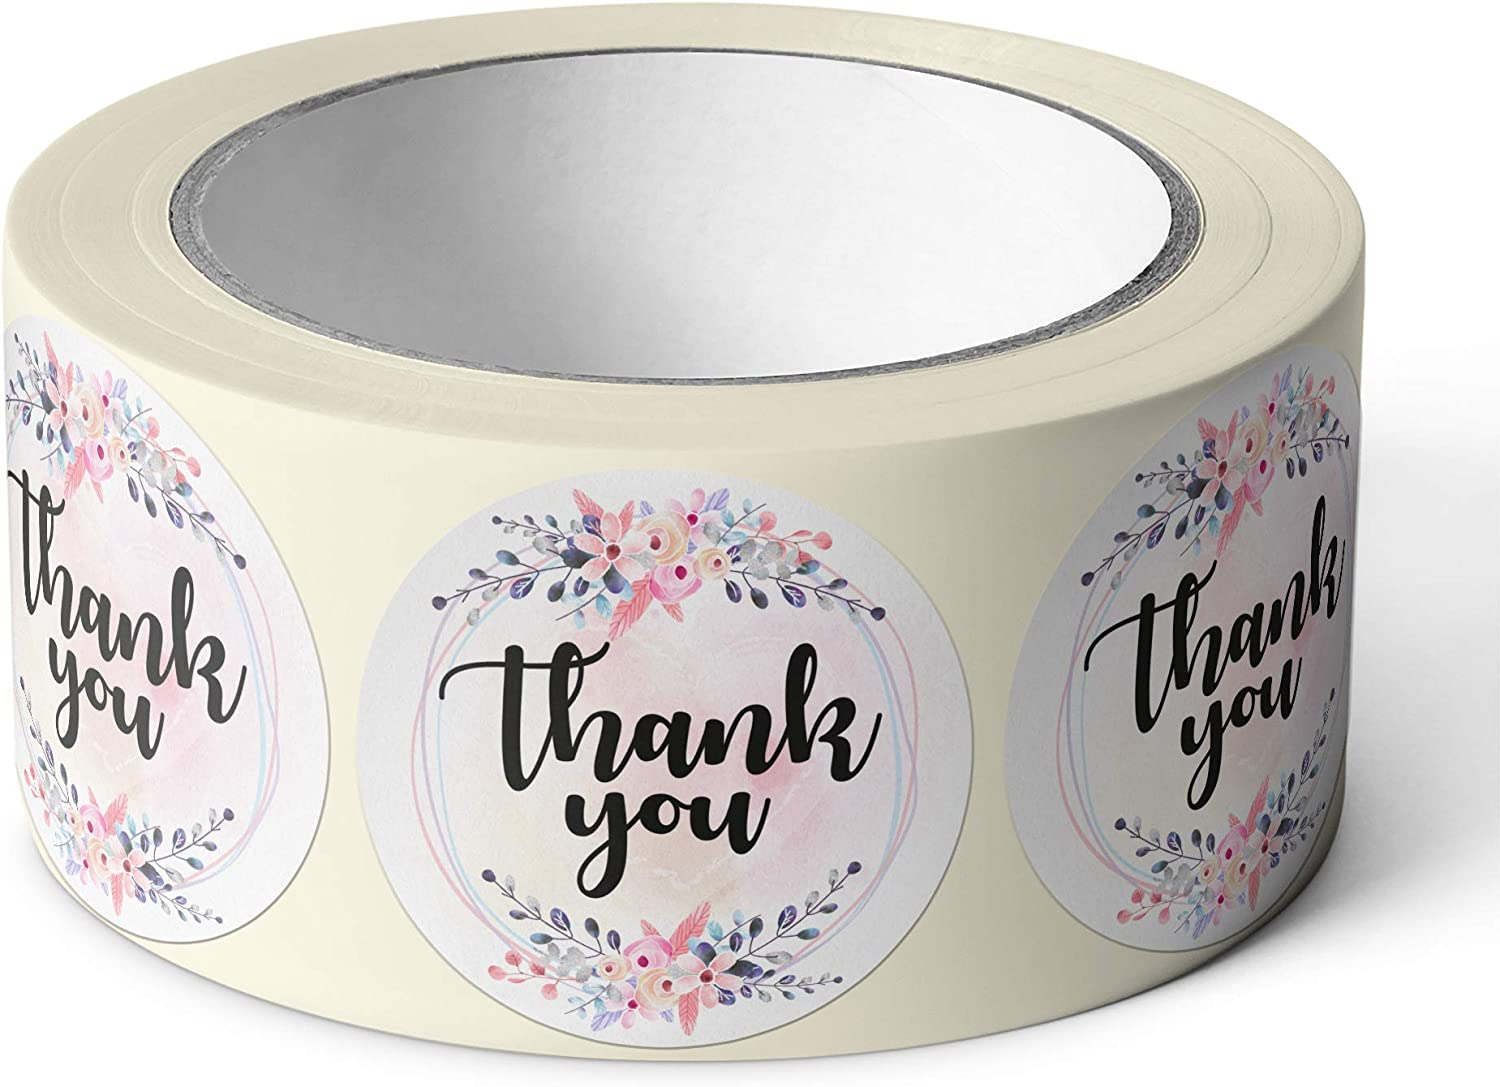 Pebble Pip Thank You Stickers Small Business Stickers 1.5